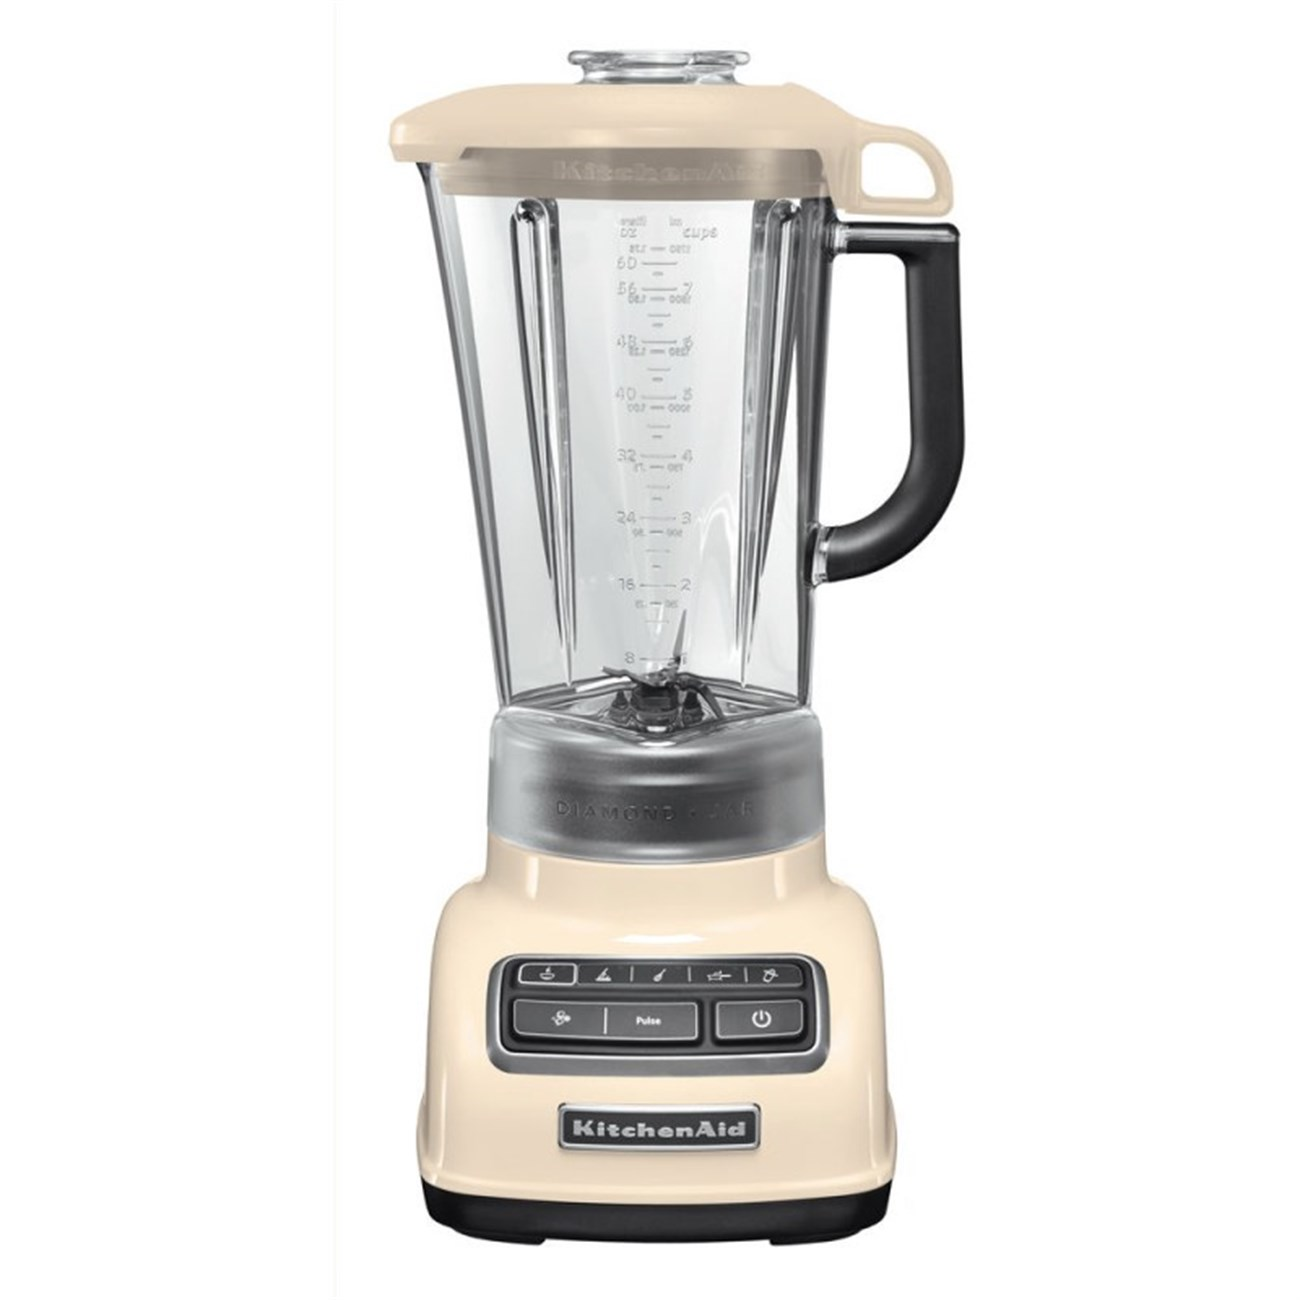 Kitchenaid Diamond Blender Almond Cream - 5KSB1585